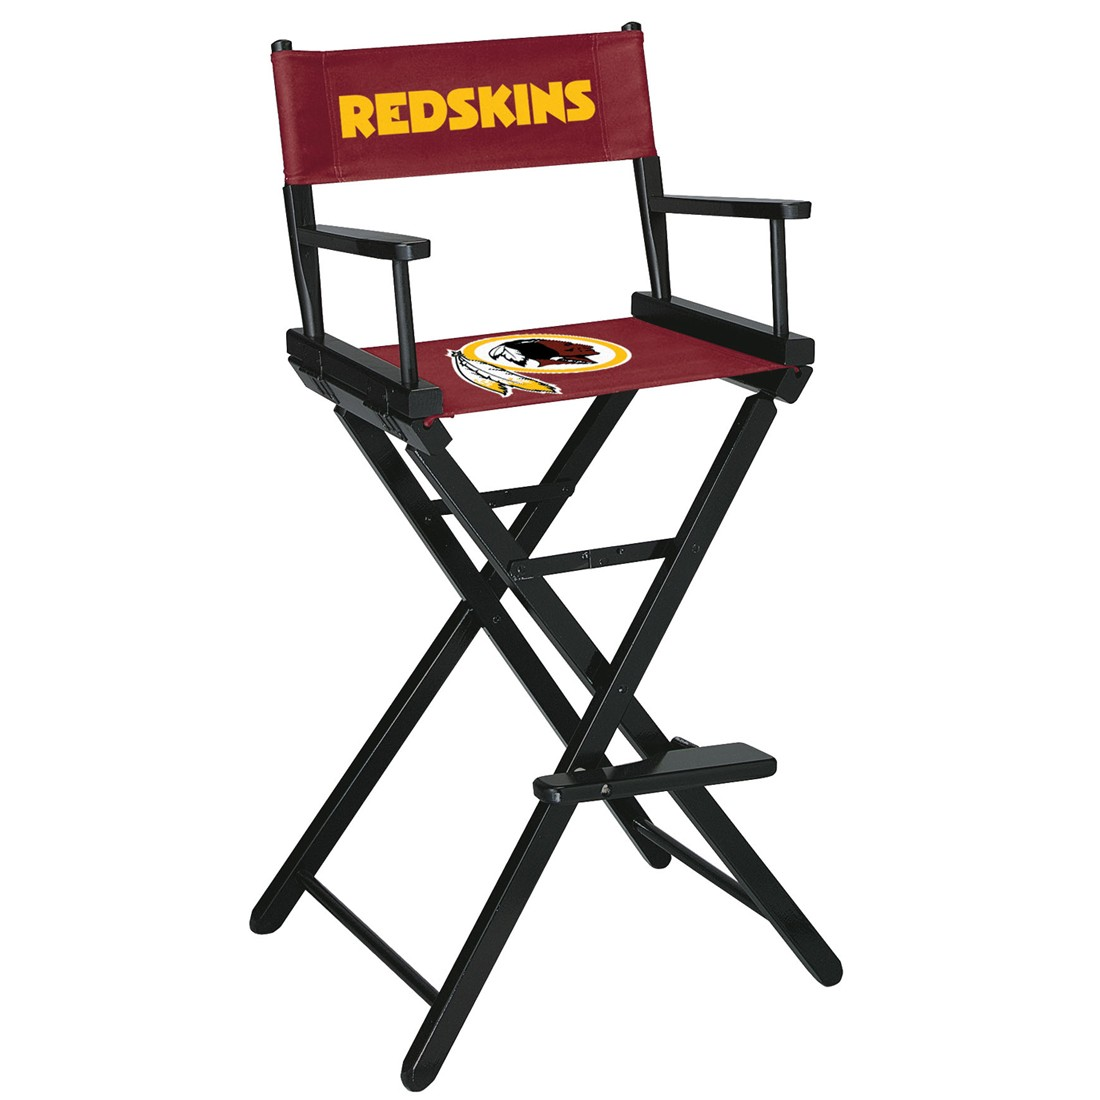 WASHINGTON REDSKINS BAR HEIGHT DIRECTORS CHAIR